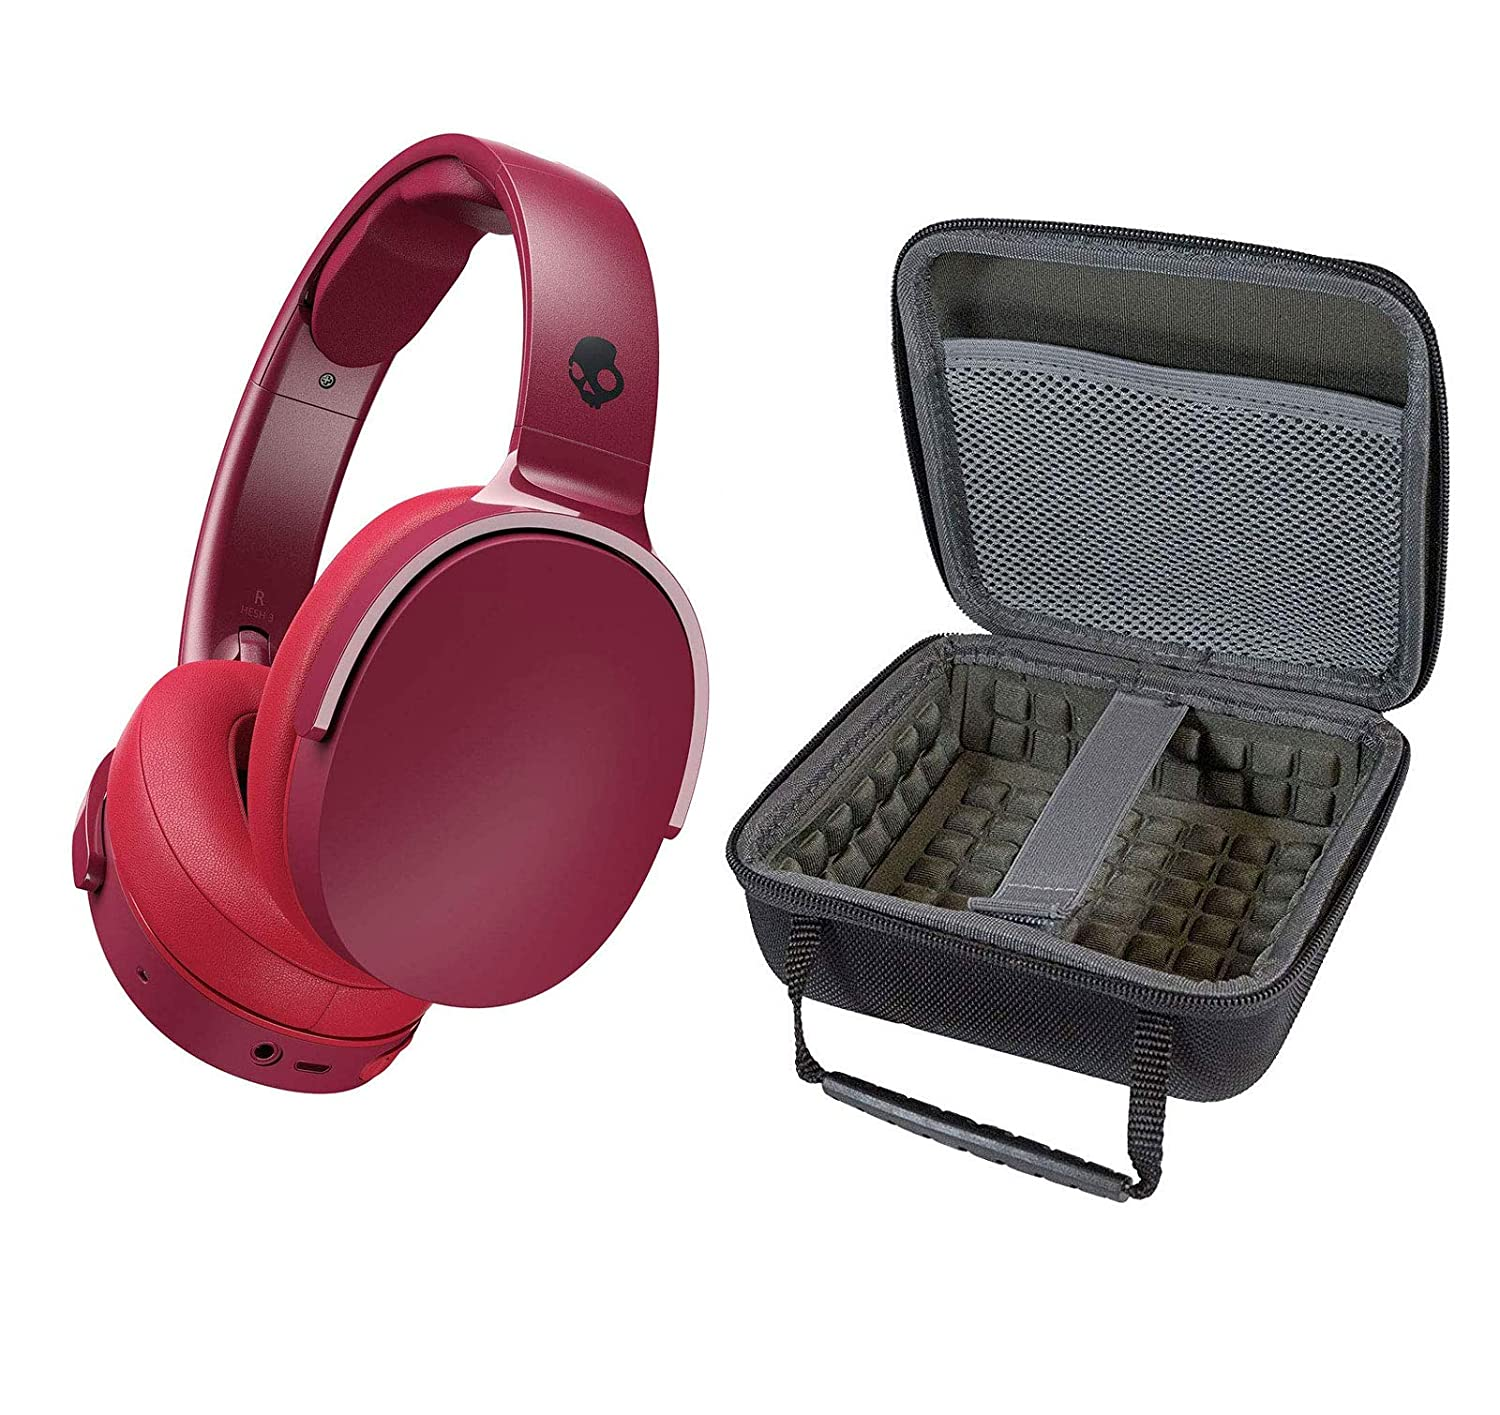 Skullcandy HESH 3 Noise Canceling Over-Ear Wireless Bluetooth Headphone Bundle with Portable Hardshell Case - Moab/Red/Black